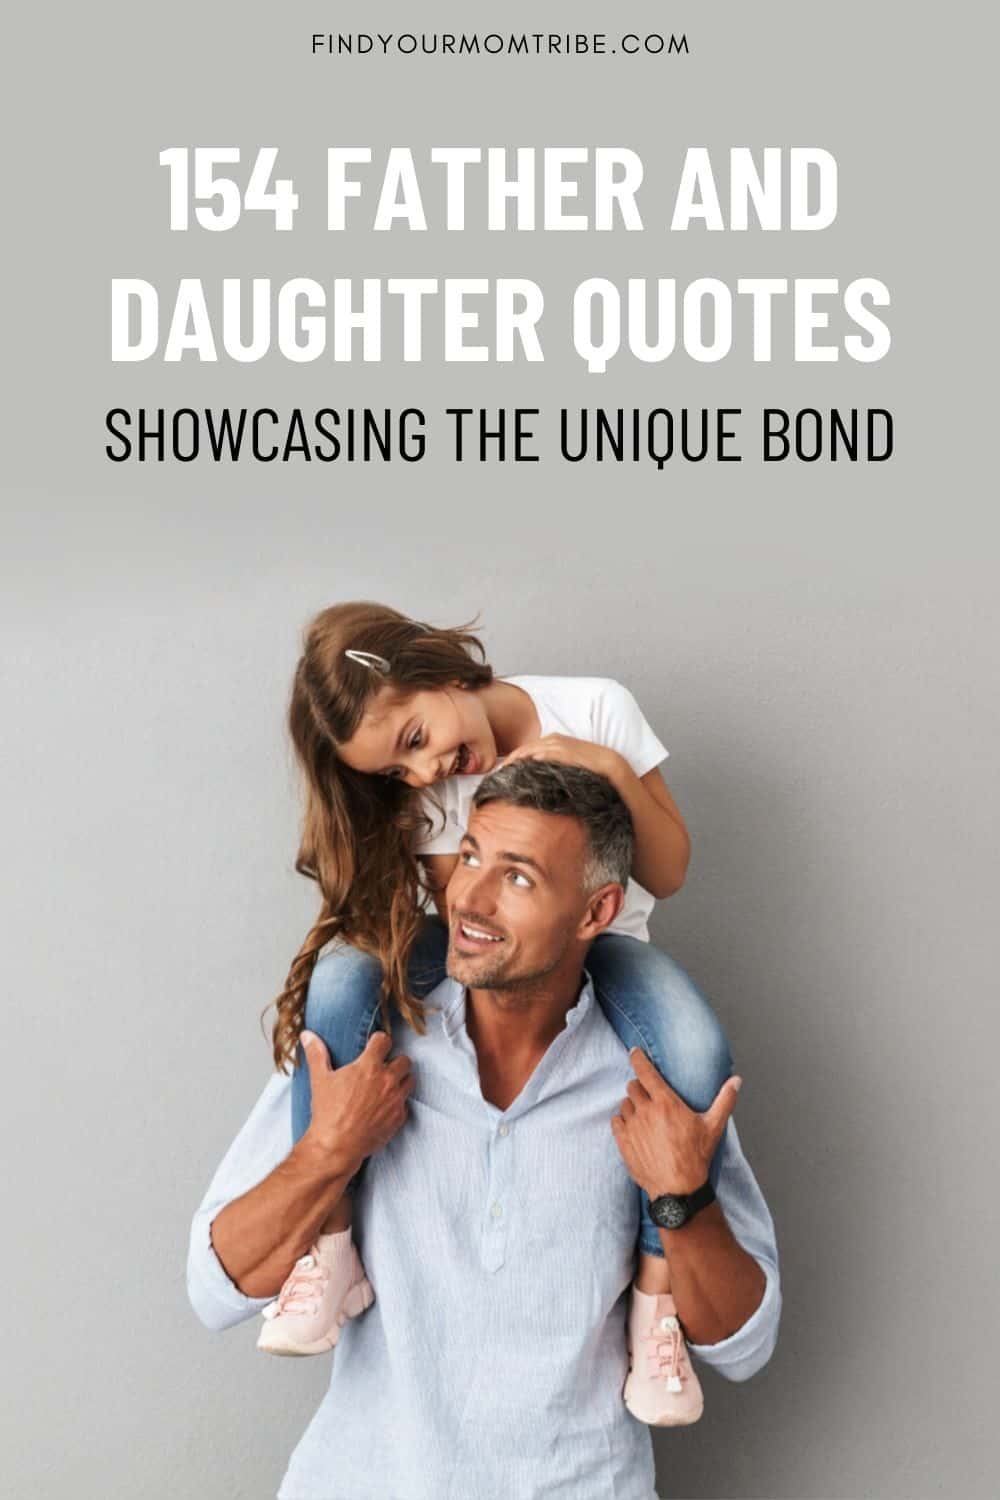 154 Father And Daughter Quotes Showcasing The Unique Bond Pinterest